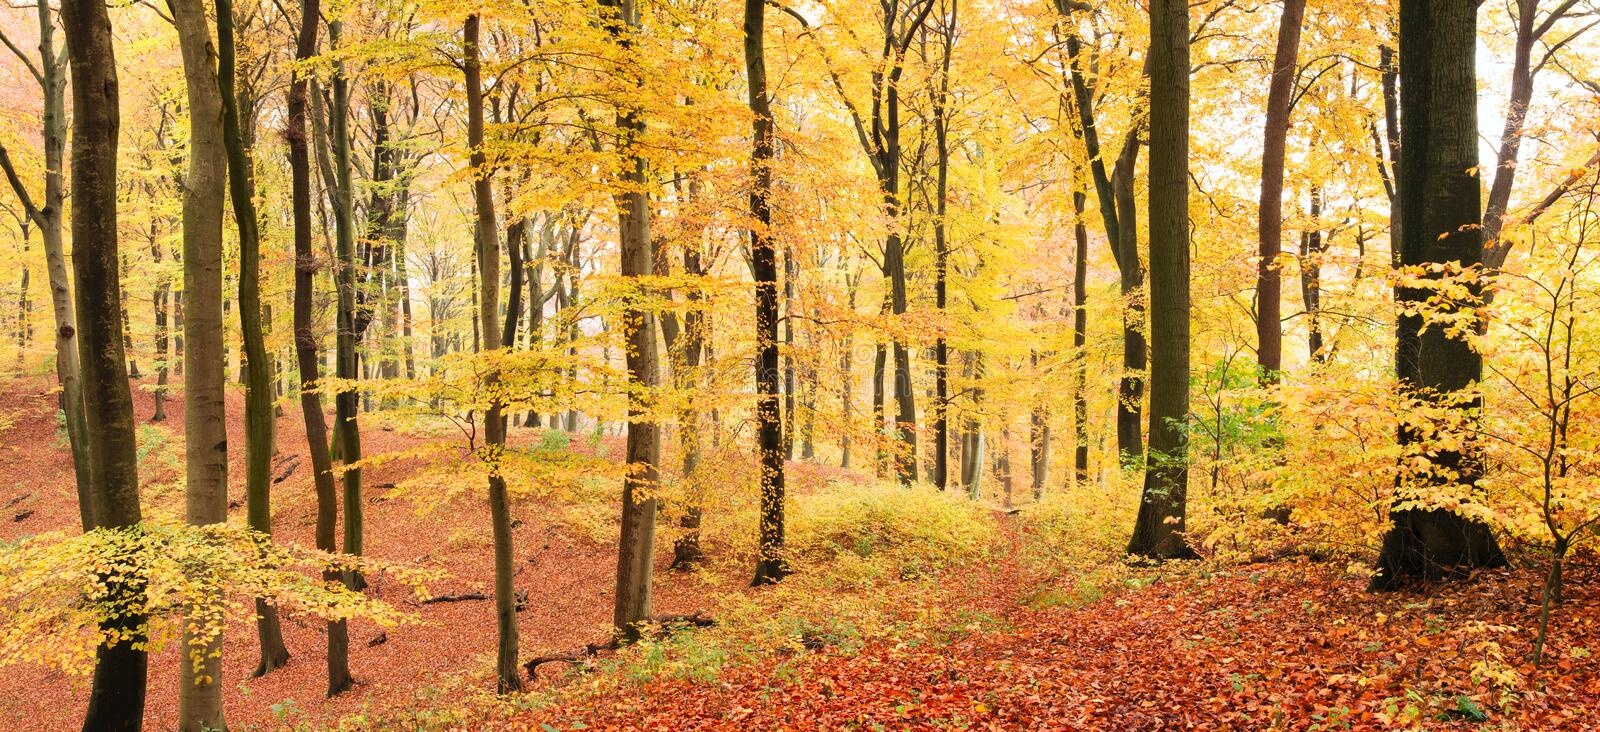 Download Winding Path In Autumn Forest Stock Photo - Image: 16784960